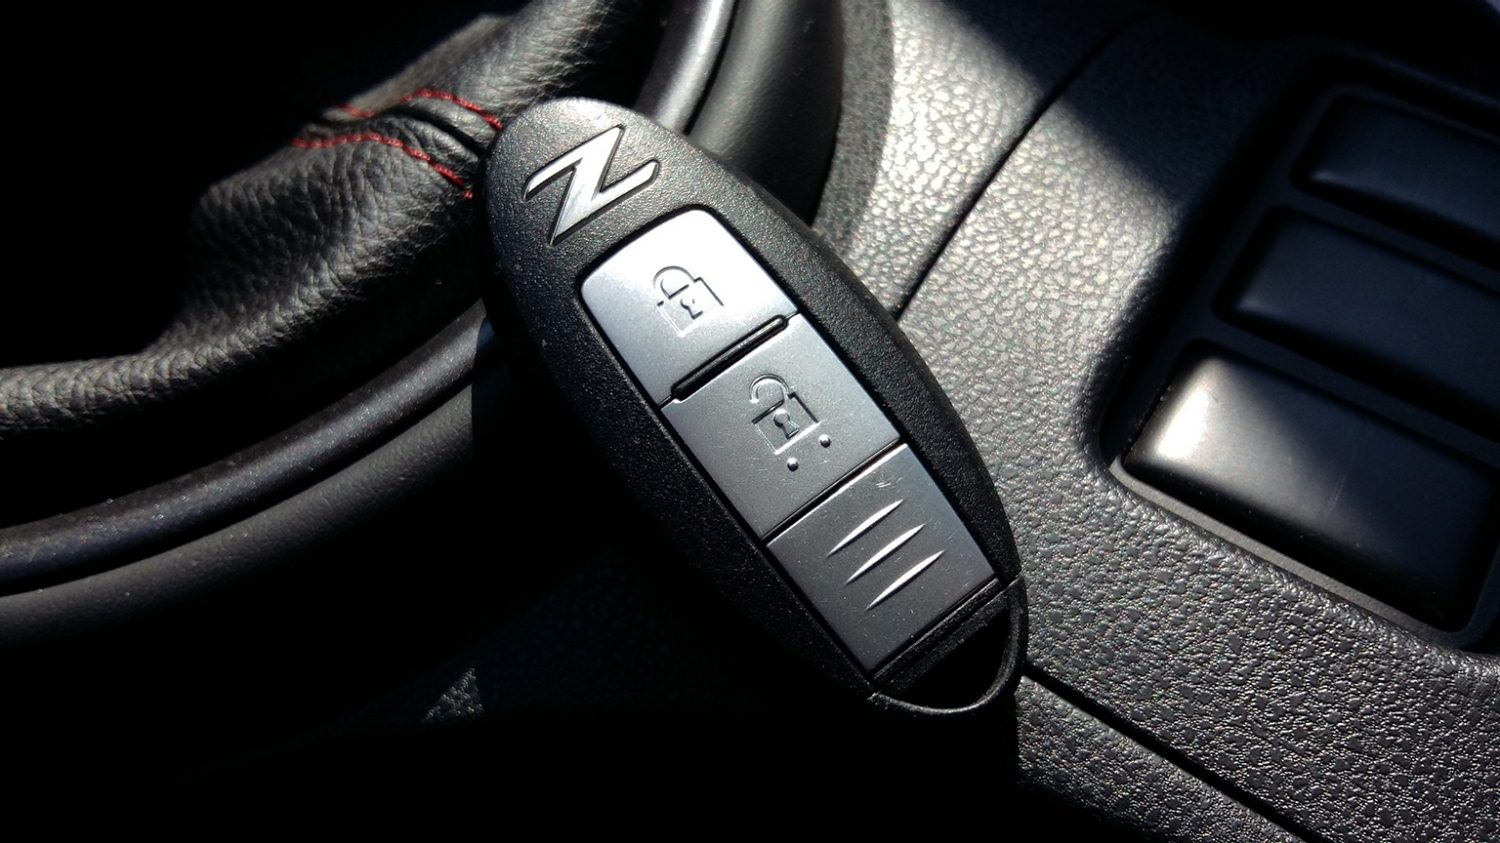 NISSAN 370Z COUPÉ – NISSAN Intelligent Key